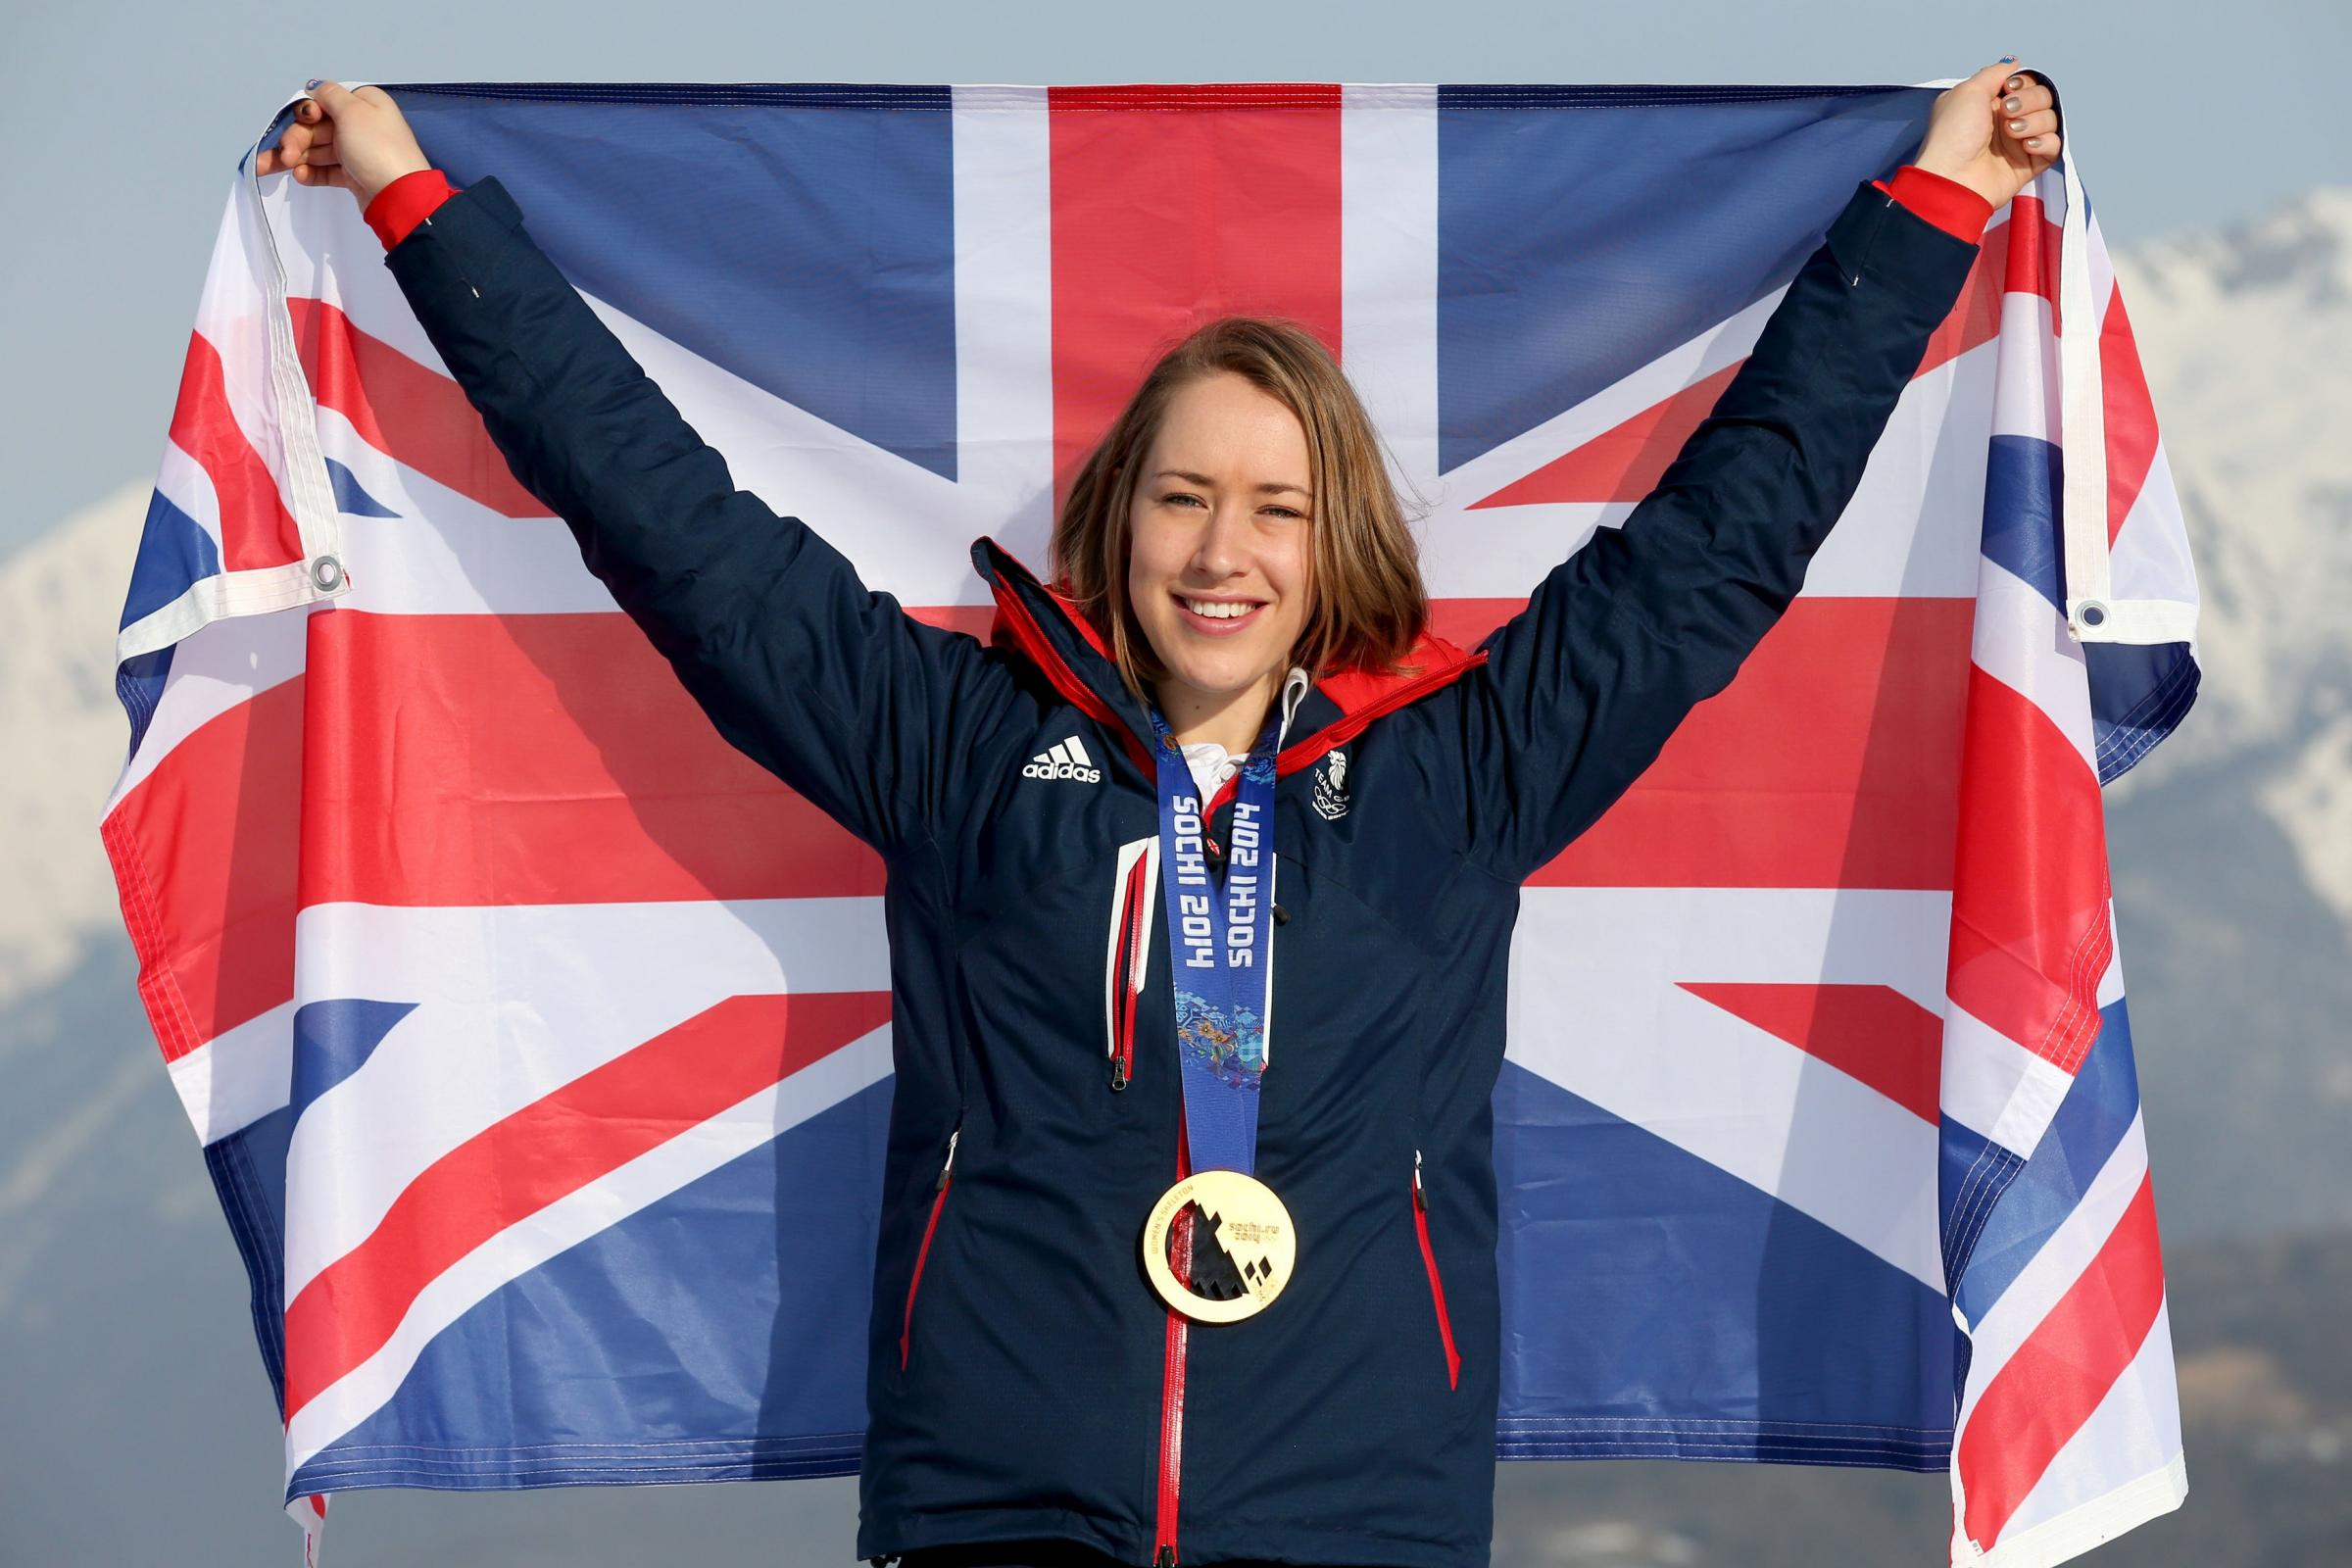 University of Gloucestershire graduate Lizzy Yarnold named as Team GB flagbearer